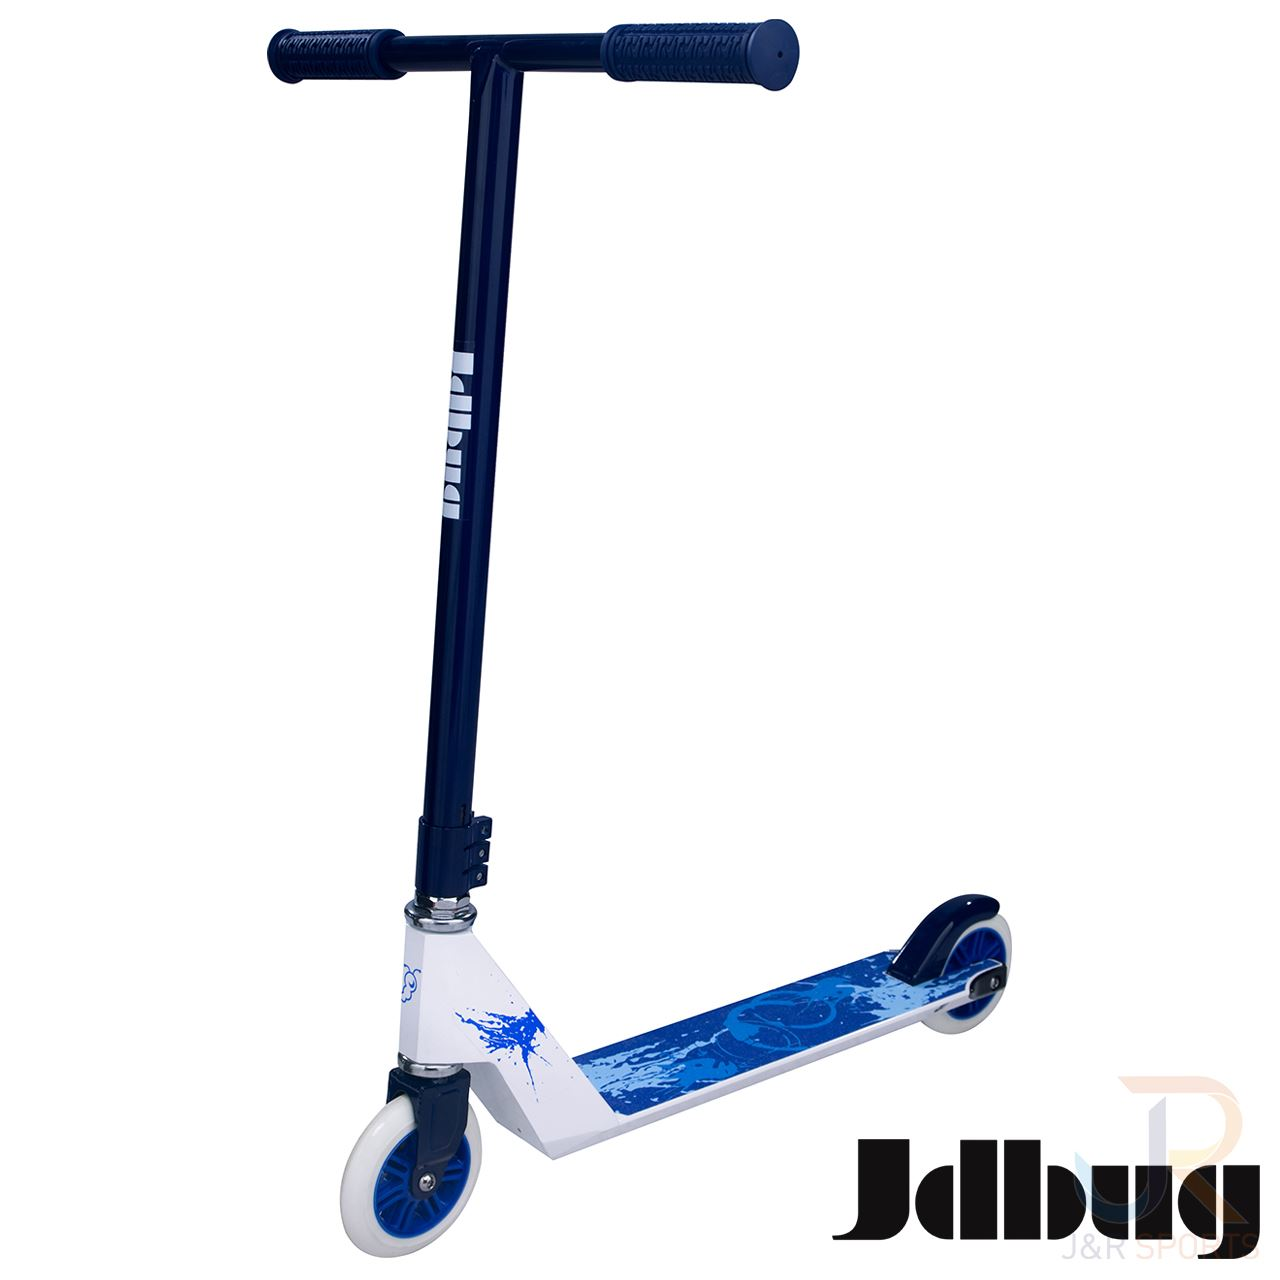 jd bug xtreme stunt scooter in white blue from jd bug. Black Bedroom Furniture Sets. Home Design Ideas